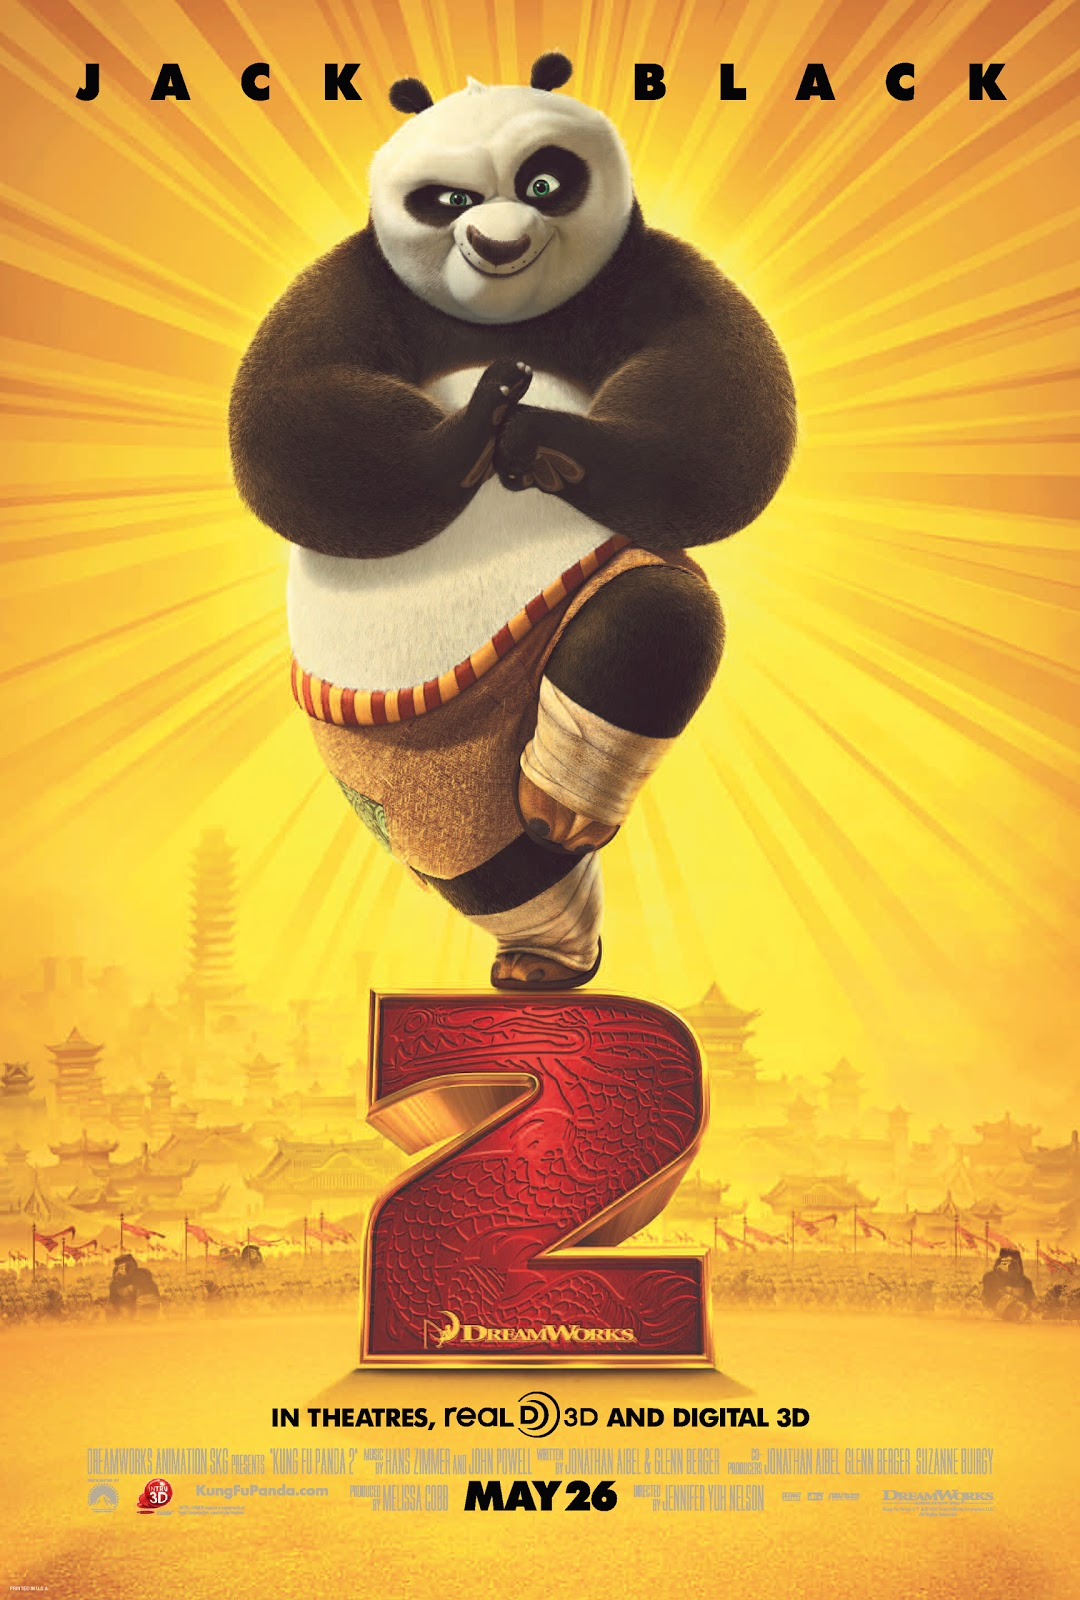 7c3817aee2b Dreamworks Animation Presents Kung Fu Panda 2 in Theaters May 26th 2011.